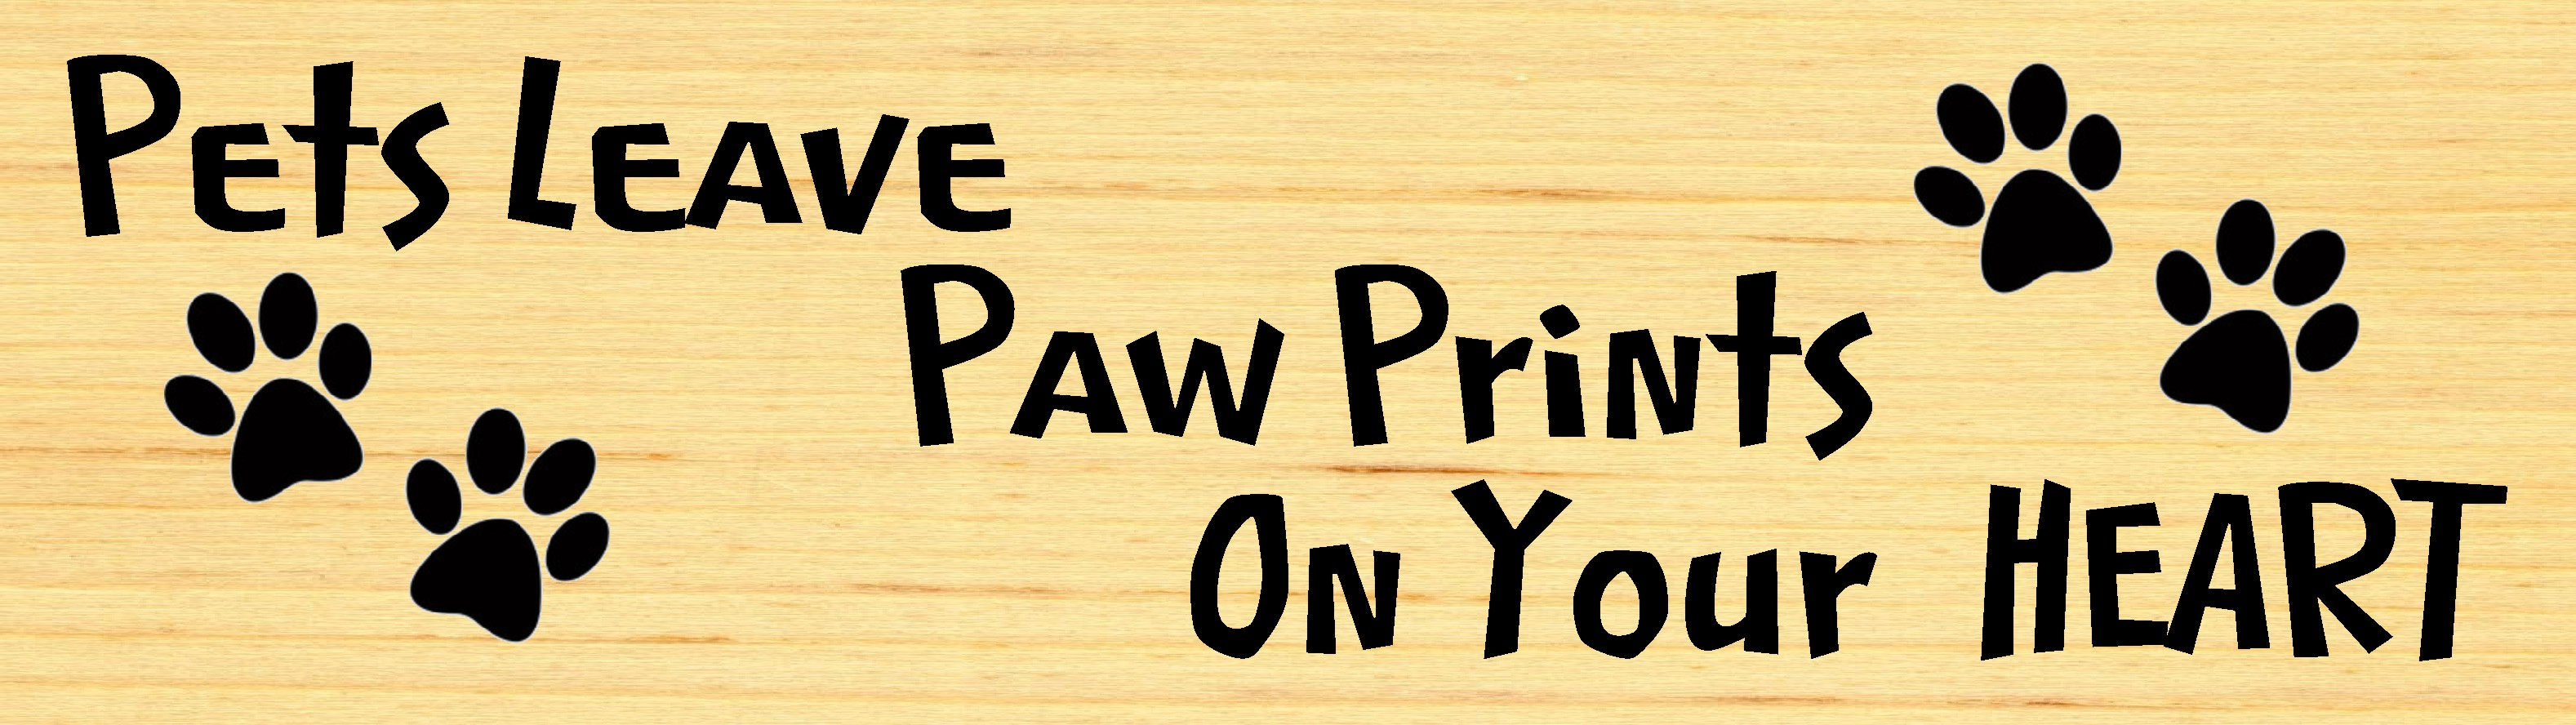 """PETS LEAVE PAW PRINTS ON YOUR HEART 10.5"""" X 3"""" WOODEN BLOCK SIGN"""